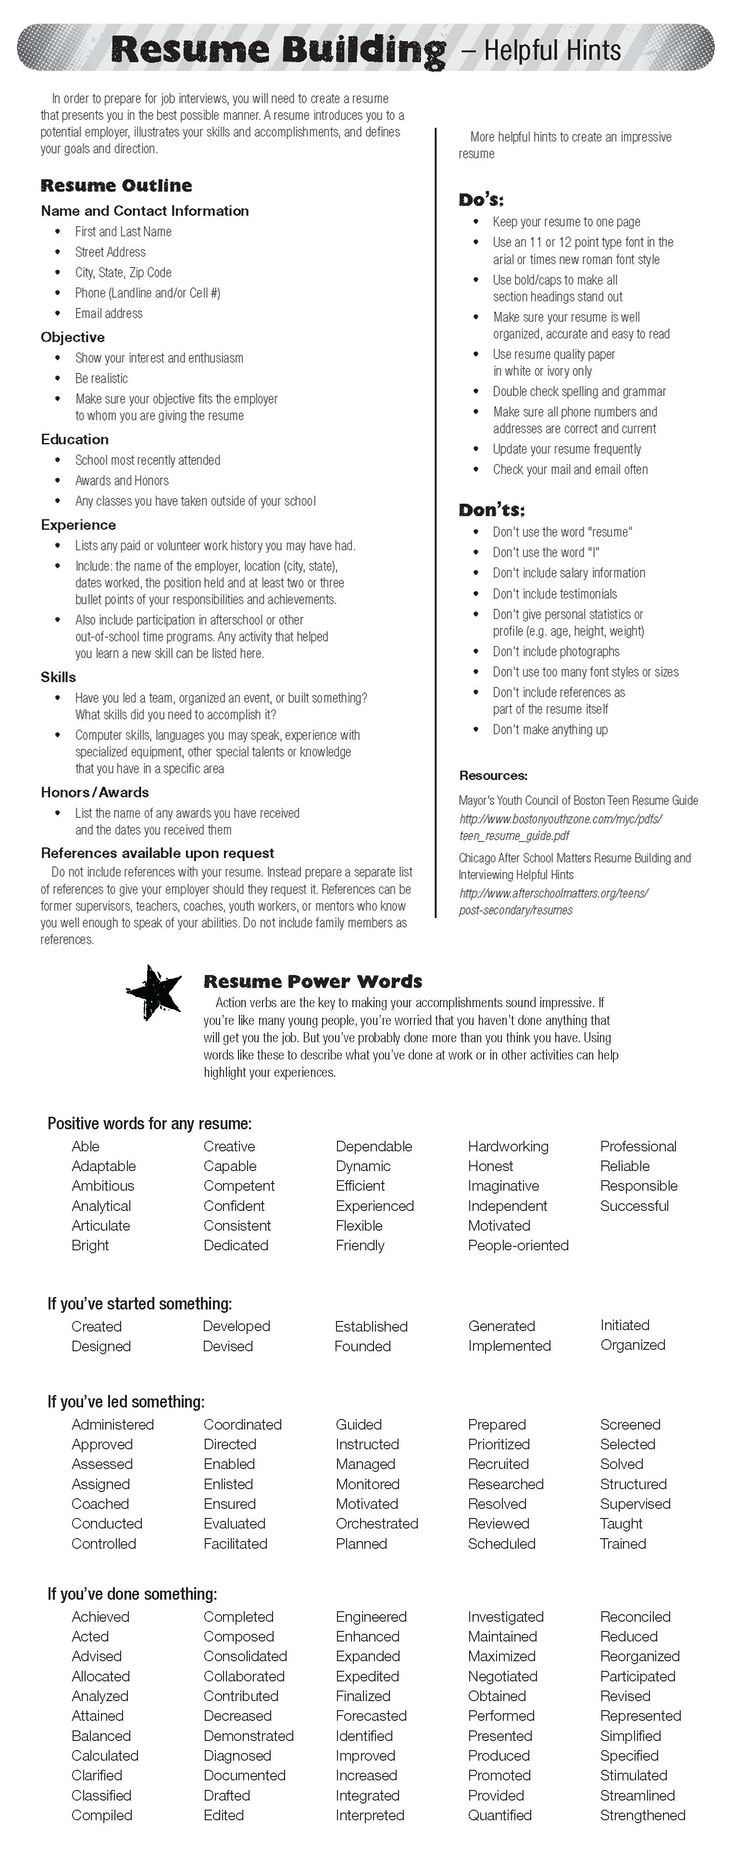 Opposenewapstandardsus  Pretty  Ideas About Resume On Pinterest  Cv Format Resume Cv And  With Exquisite  Ideas About Resume On Pinterest  Cv Format Resume Cv And Resume Templates With Captivating Profile In A Resume Also Radiology Tech Resume In Addition Make An Online Resume And Example Of A Resume Summary As Well As List Education On Resume Additionally Help Desk Resume Sample From Pinterestcom With Opposenewapstandardsus  Exquisite  Ideas About Resume On Pinterest  Cv Format Resume Cv And  With Captivating  Ideas About Resume On Pinterest  Cv Format Resume Cv And Resume Templates And Pretty Profile In A Resume Also Radiology Tech Resume In Addition Make An Online Resume From Pinterestcom